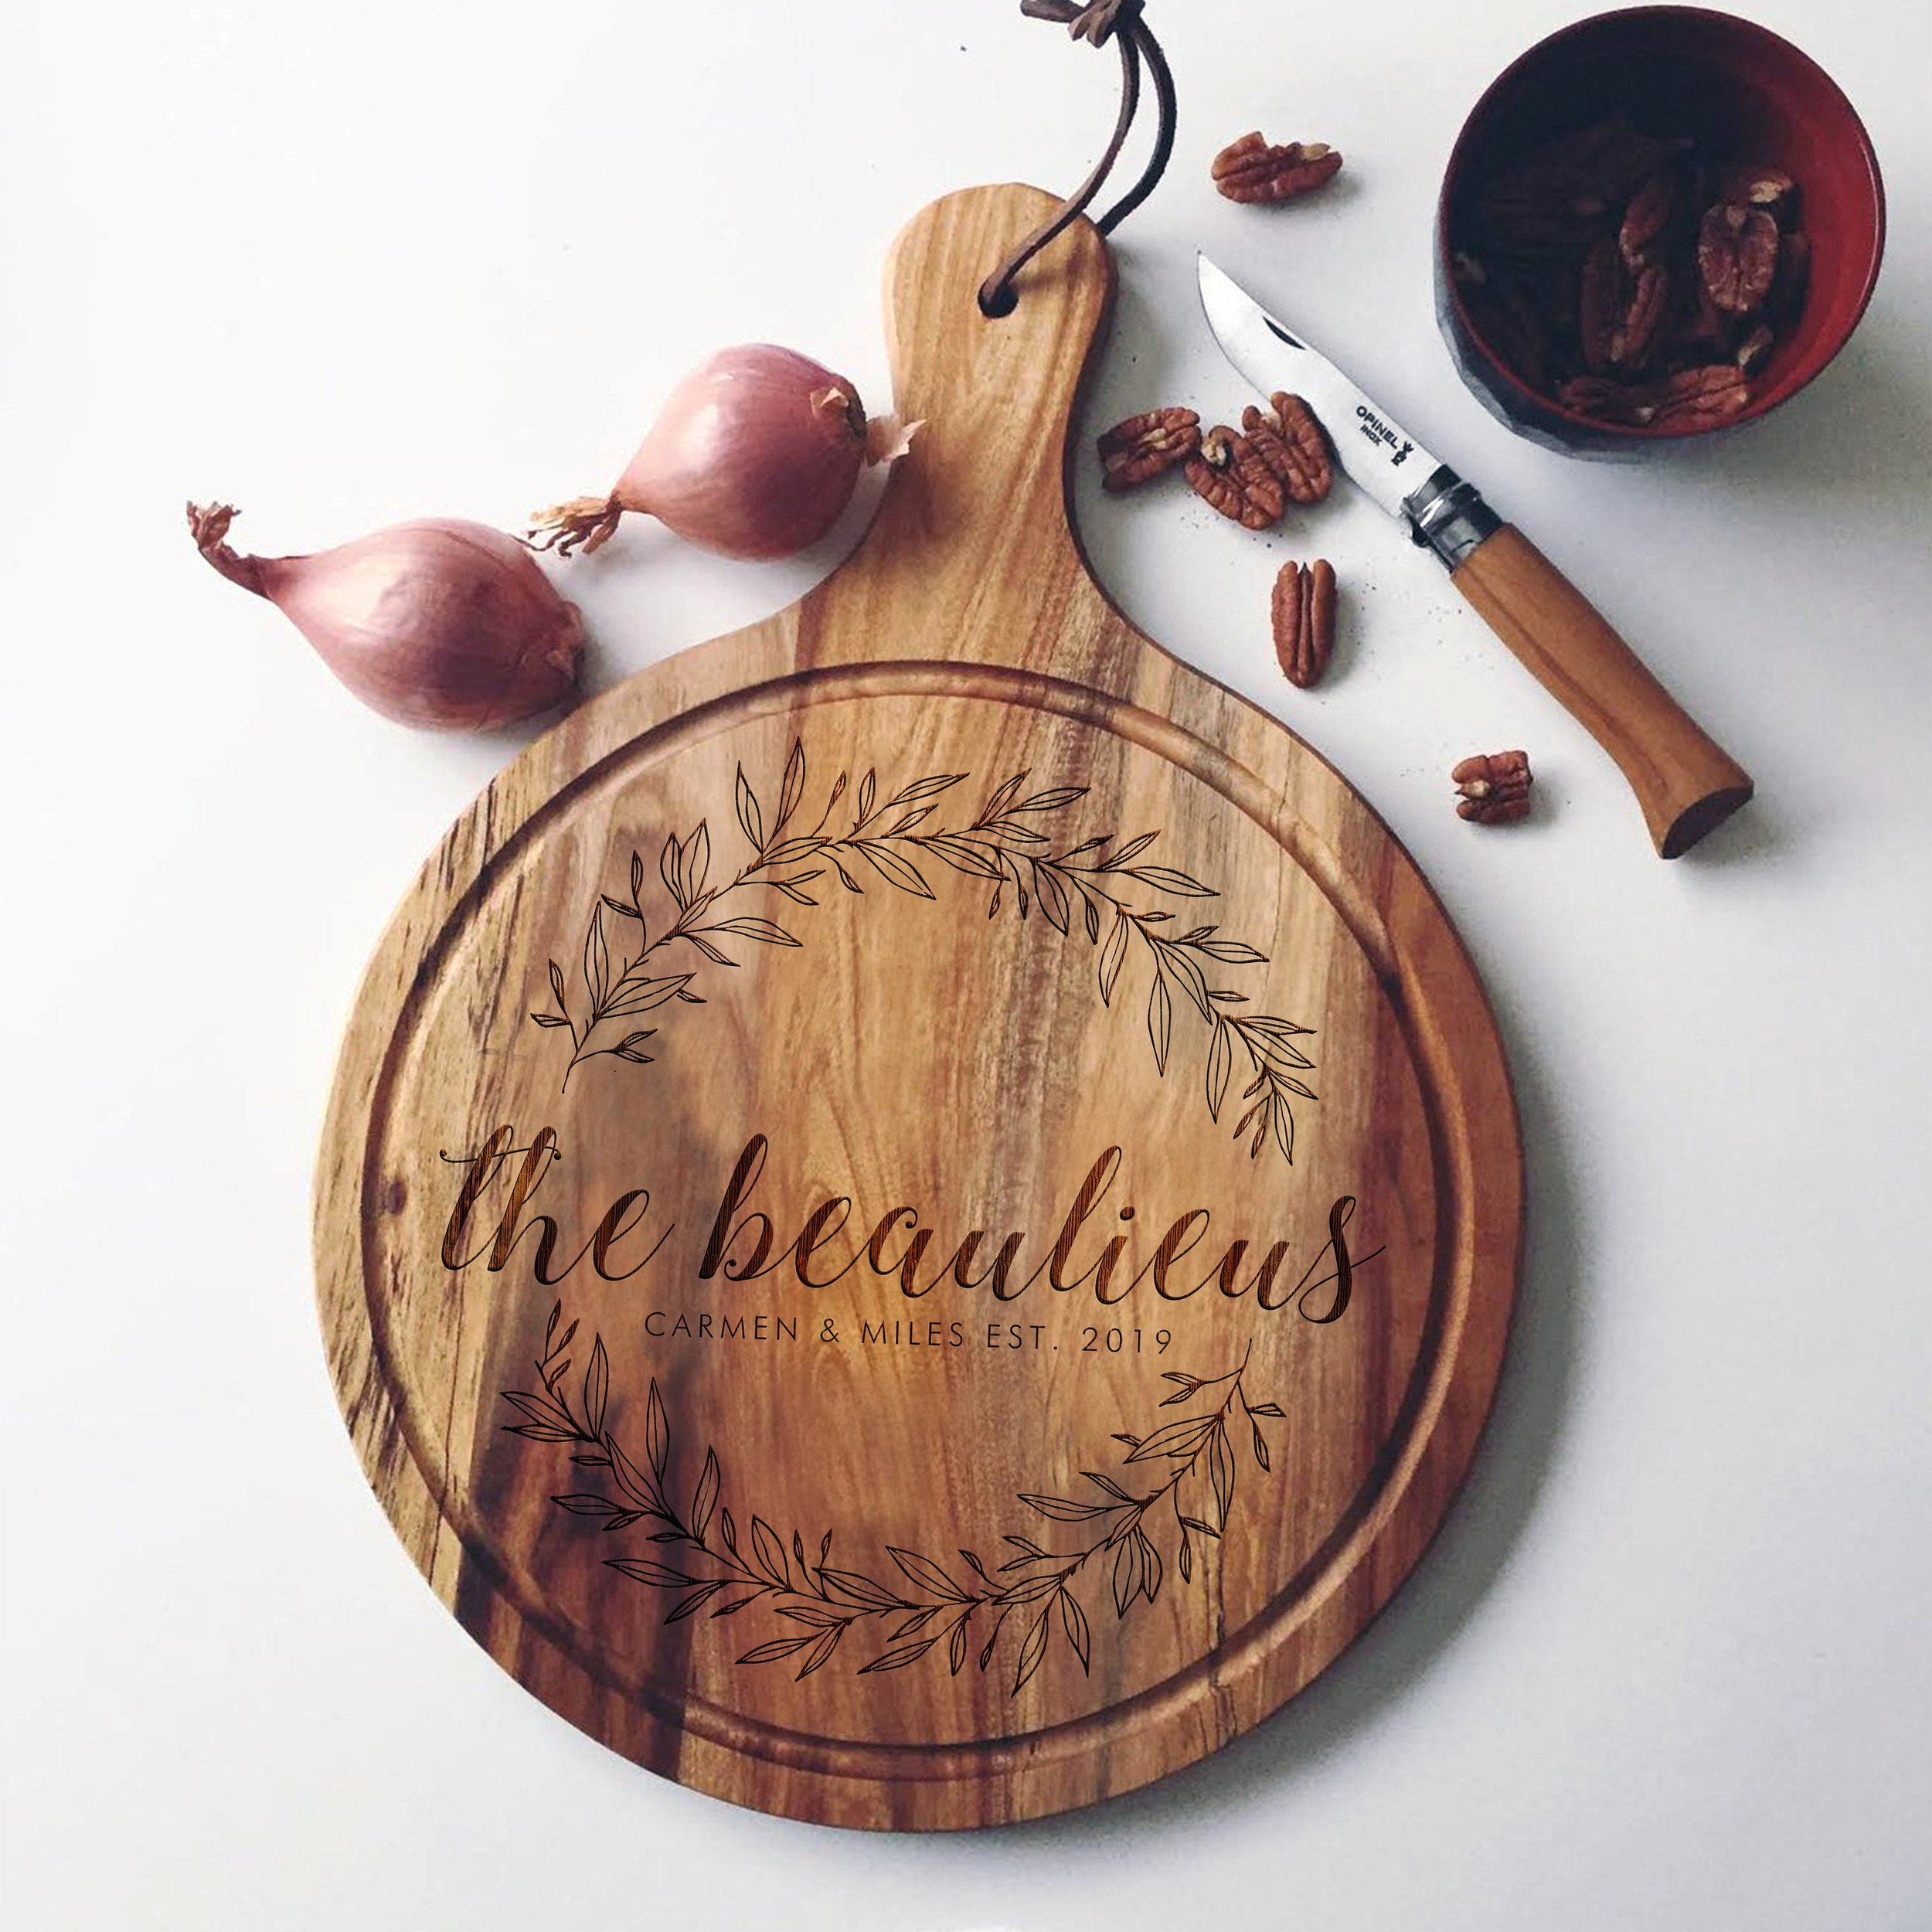 Custom Engraved Cutting Board from Wood Be Mine - Zero Waste Wedding Gift Ideas on The Good Trade